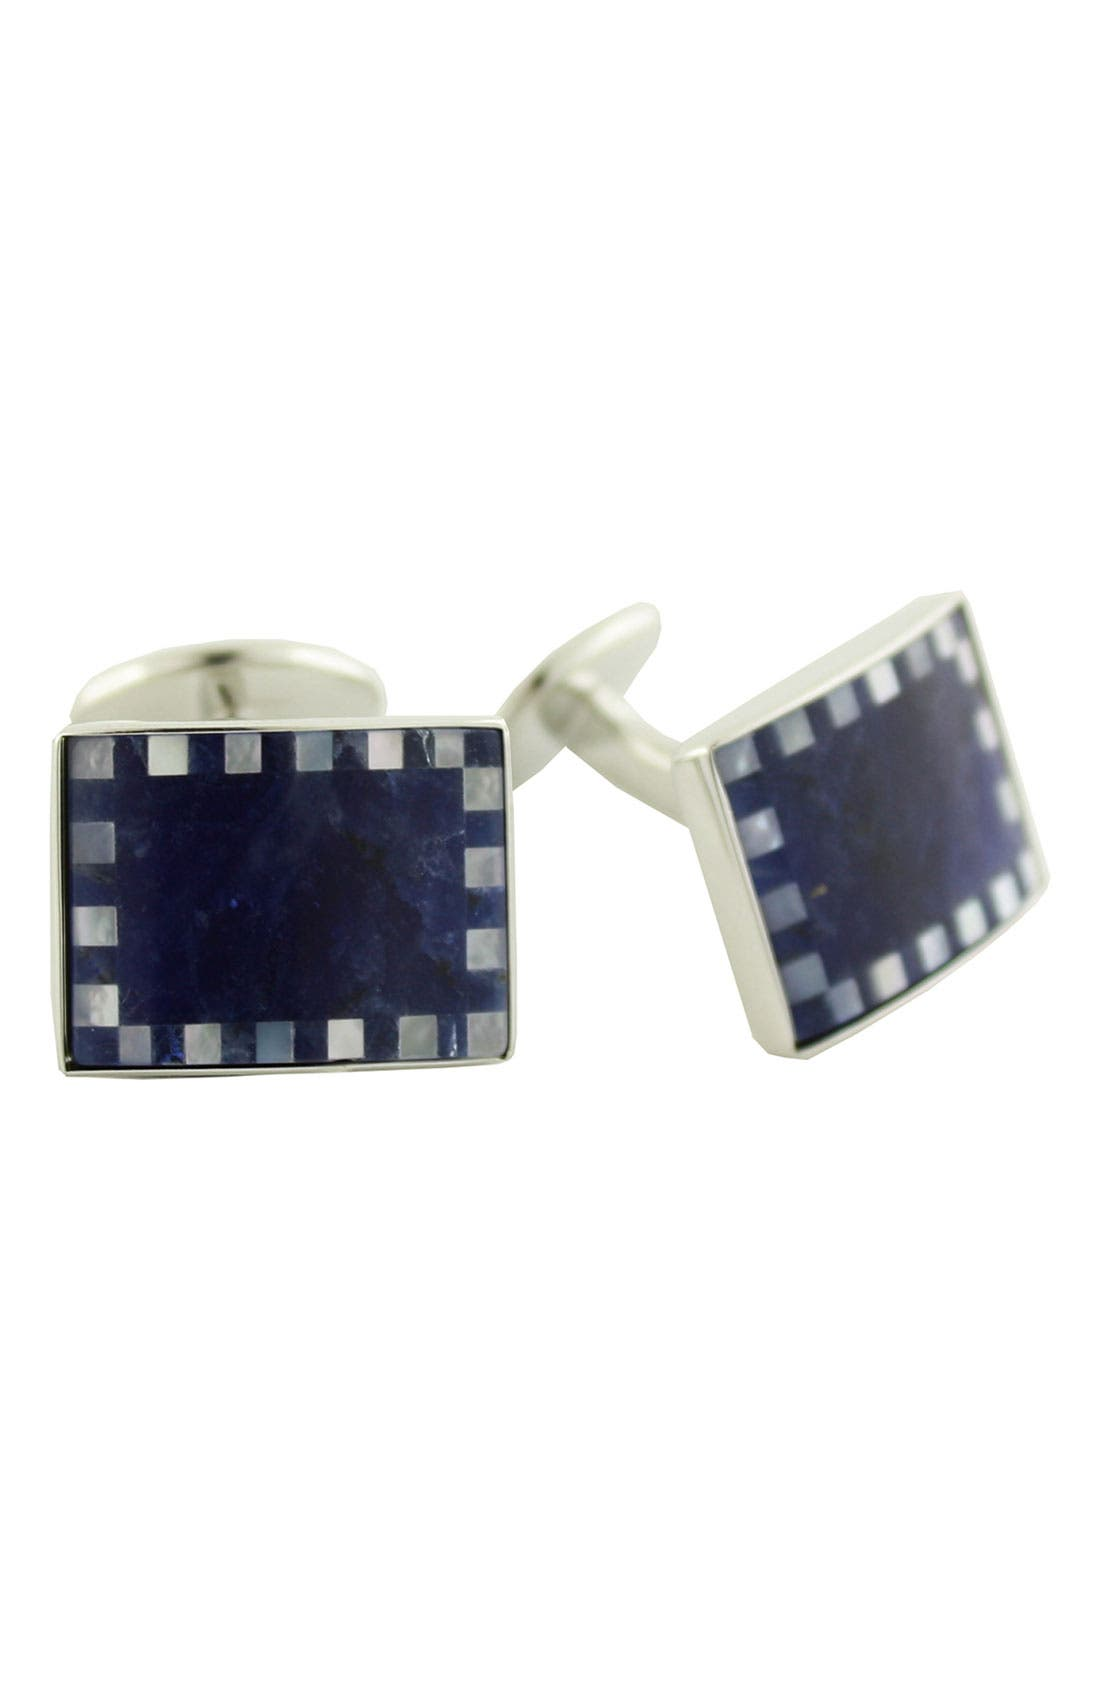 Main Image - David Donahue Sterling Silver, Sodalite & Mother-of-Pearl Cuff Links